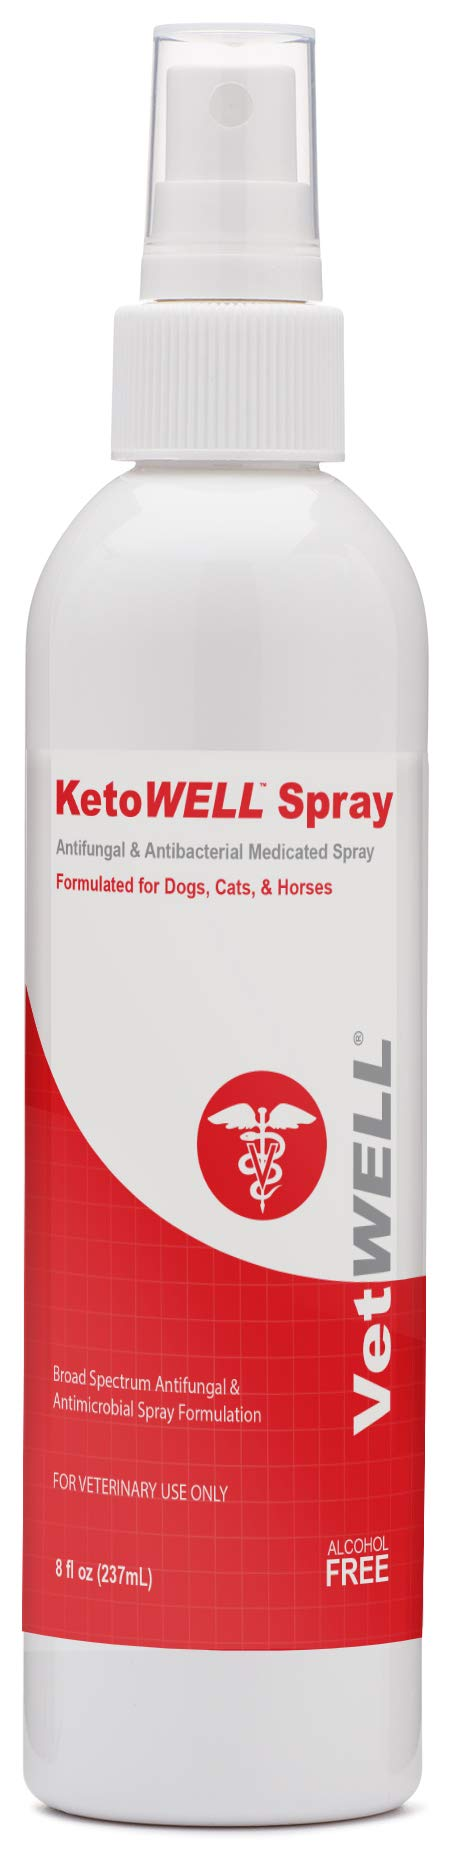 KetoWELL Chlorhexidine & Ketoconazole Antiseptic, Antifungal, Antibacterial Medicated Spray for Dogs & Cats - Hot Spot Treatment, Ringworm, Yeast, Fungal Infections, Acne - Aloe & Vitamin E - 8 oz